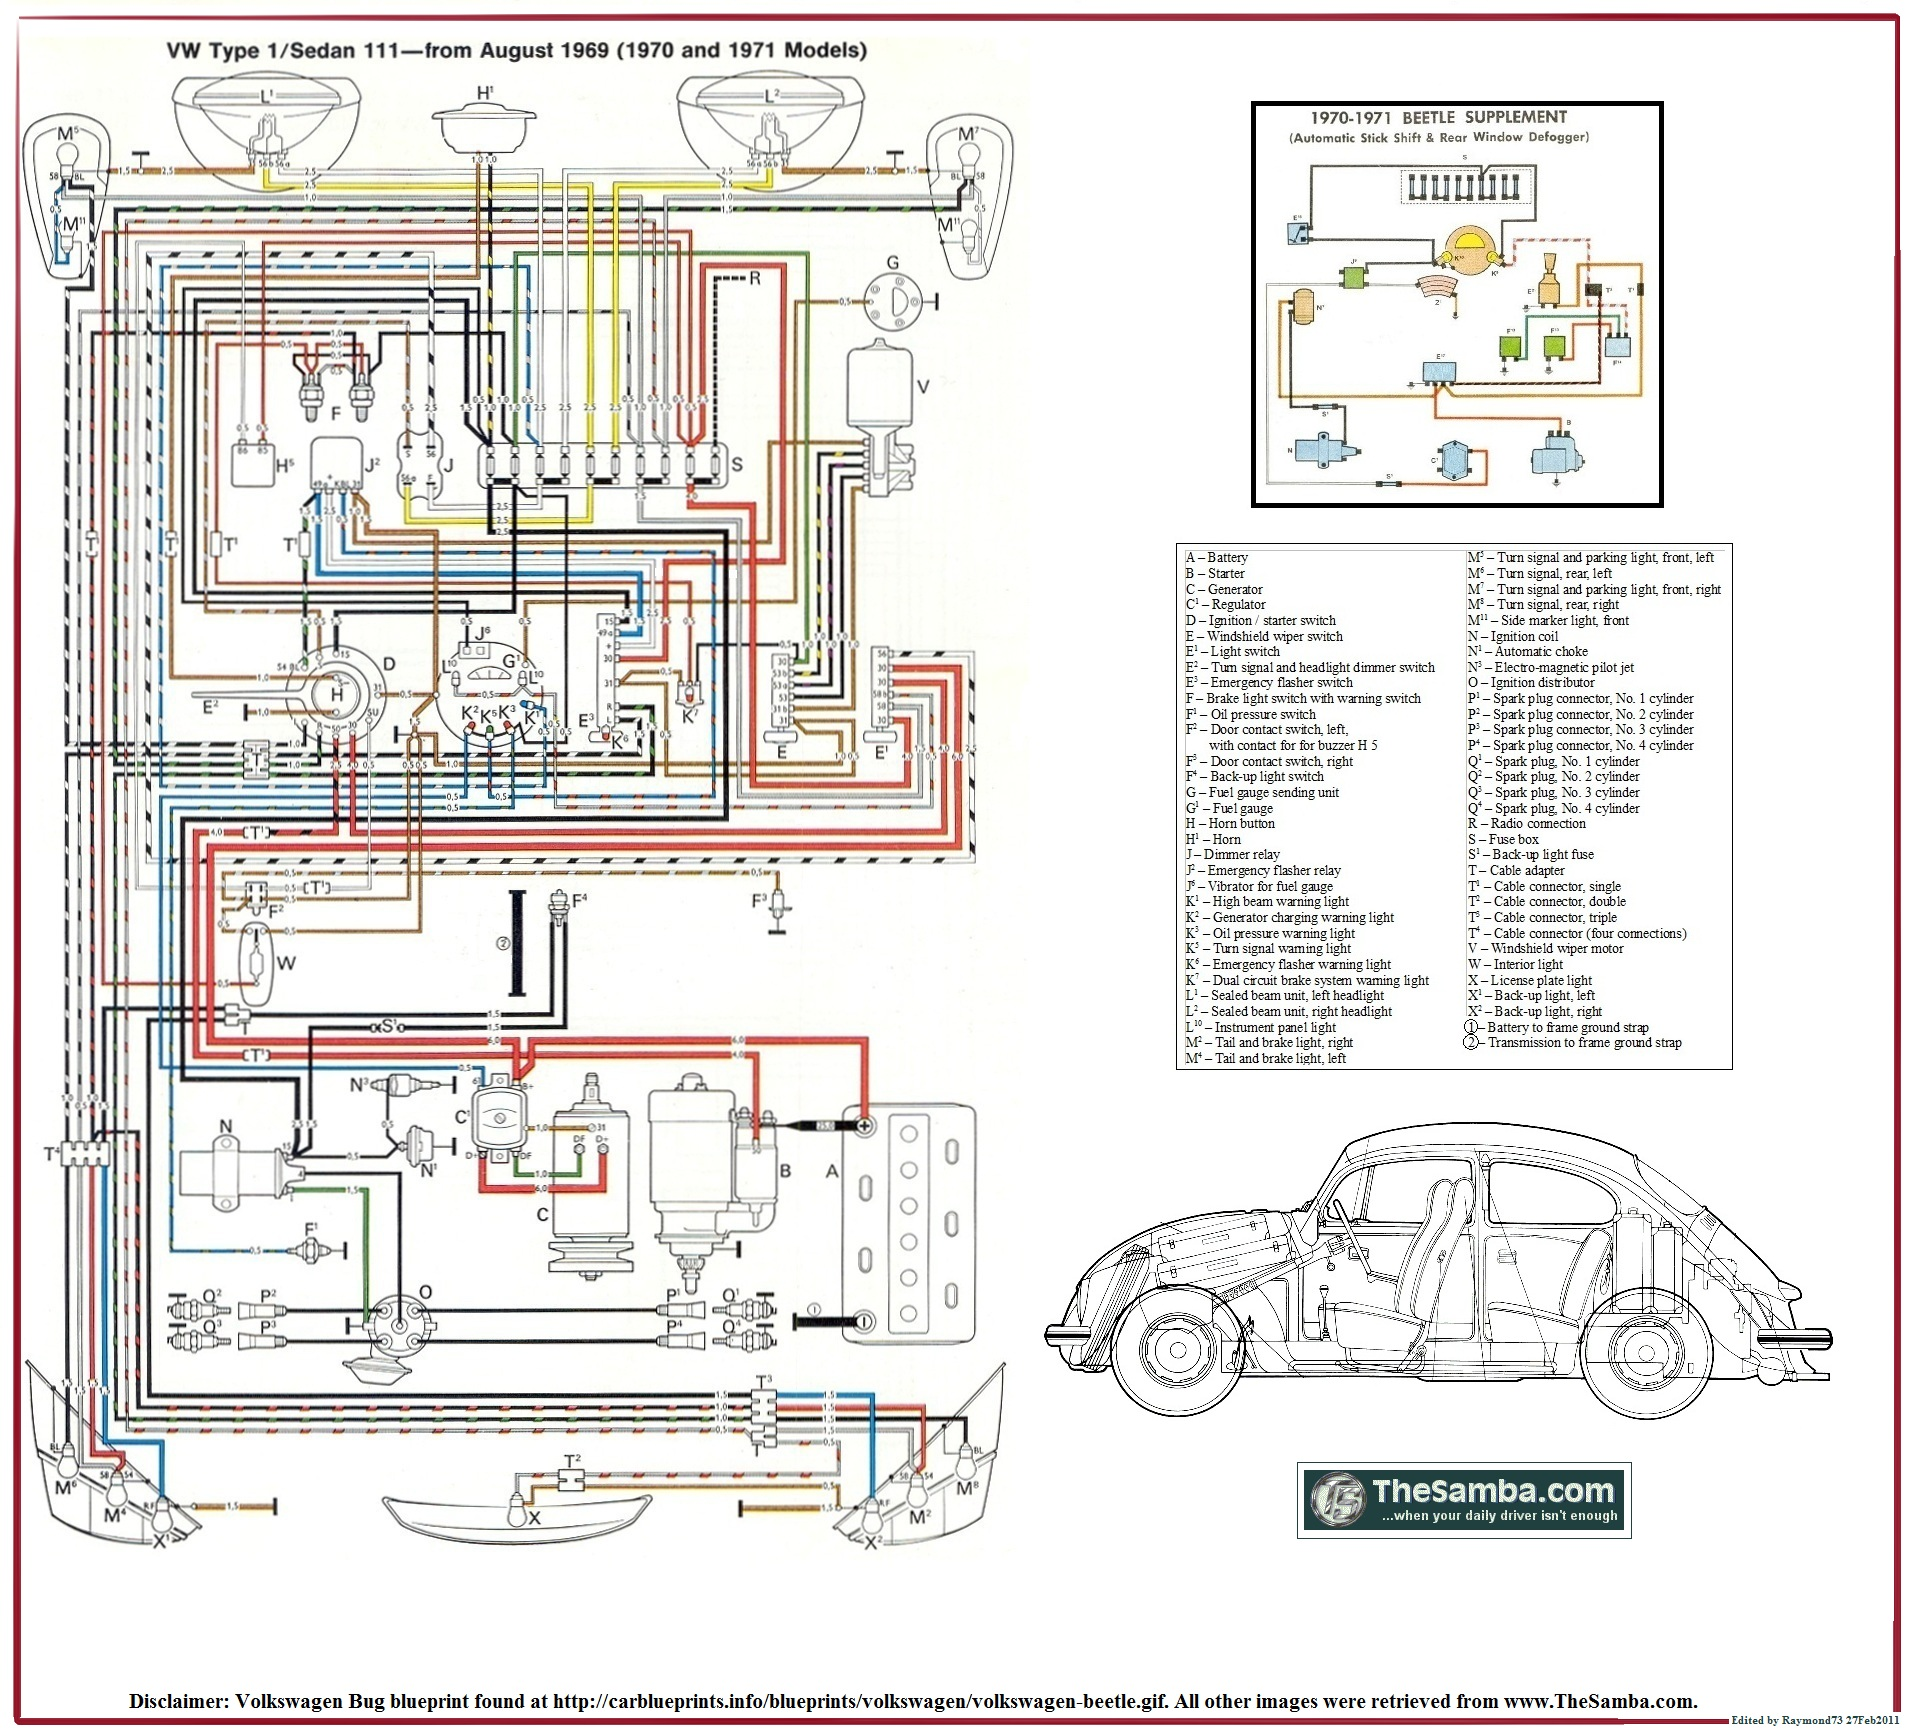 1970_VW_Type_1_Poster thesamba com beetle late model super 1968 up view topic 1969 vw beetle wiring diagram at bayanpartner.co